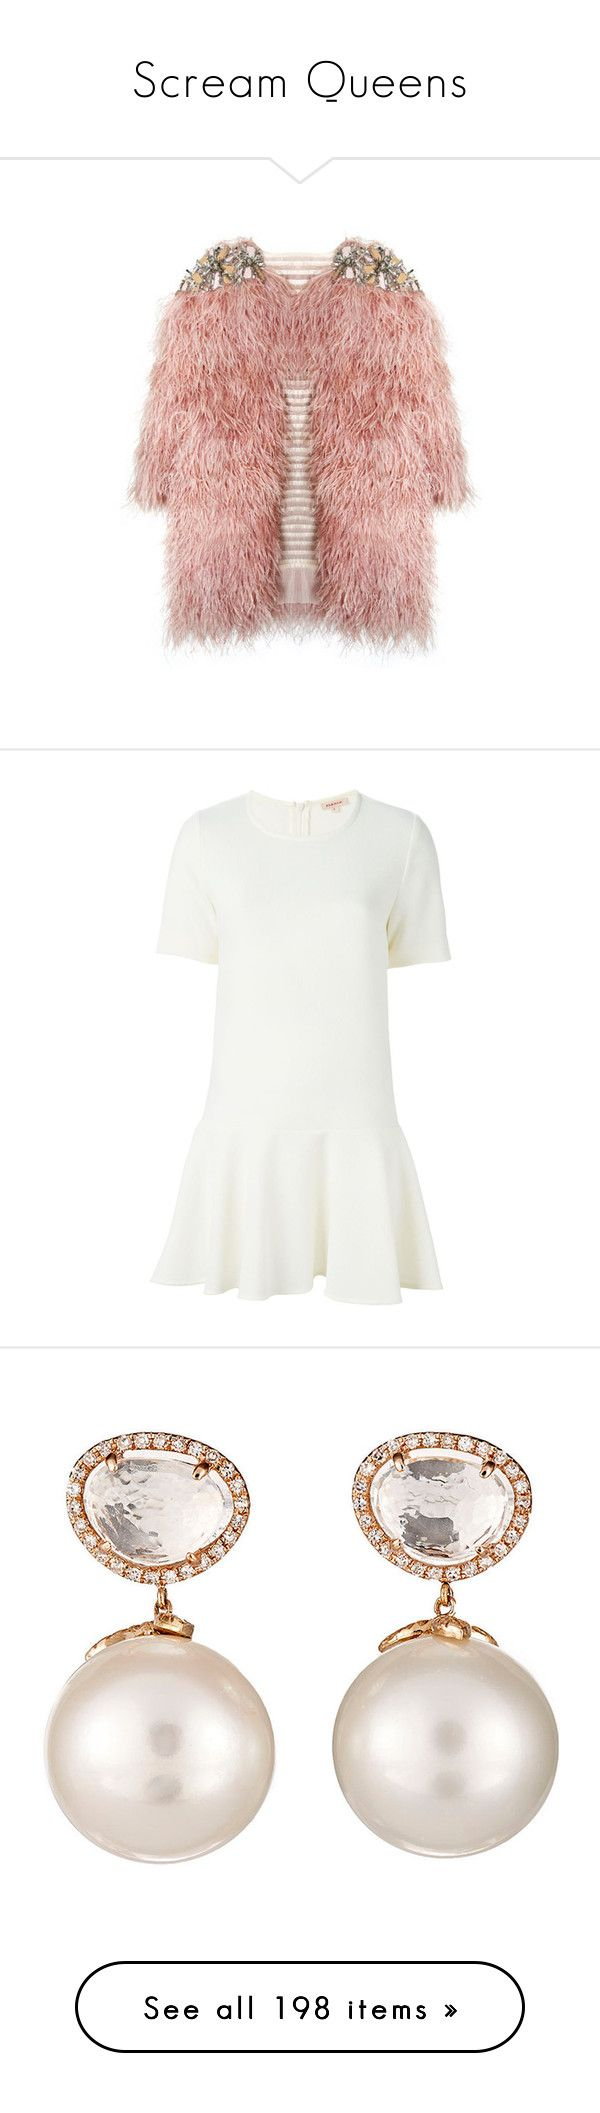 """""""Scream Queens"""" by shanelala ❤ liked on Polyvore featuring jackets, outerwear, coats, tops, dresses, vestidos, daisy cleveland, white dress, mini dress and white mini dress"""